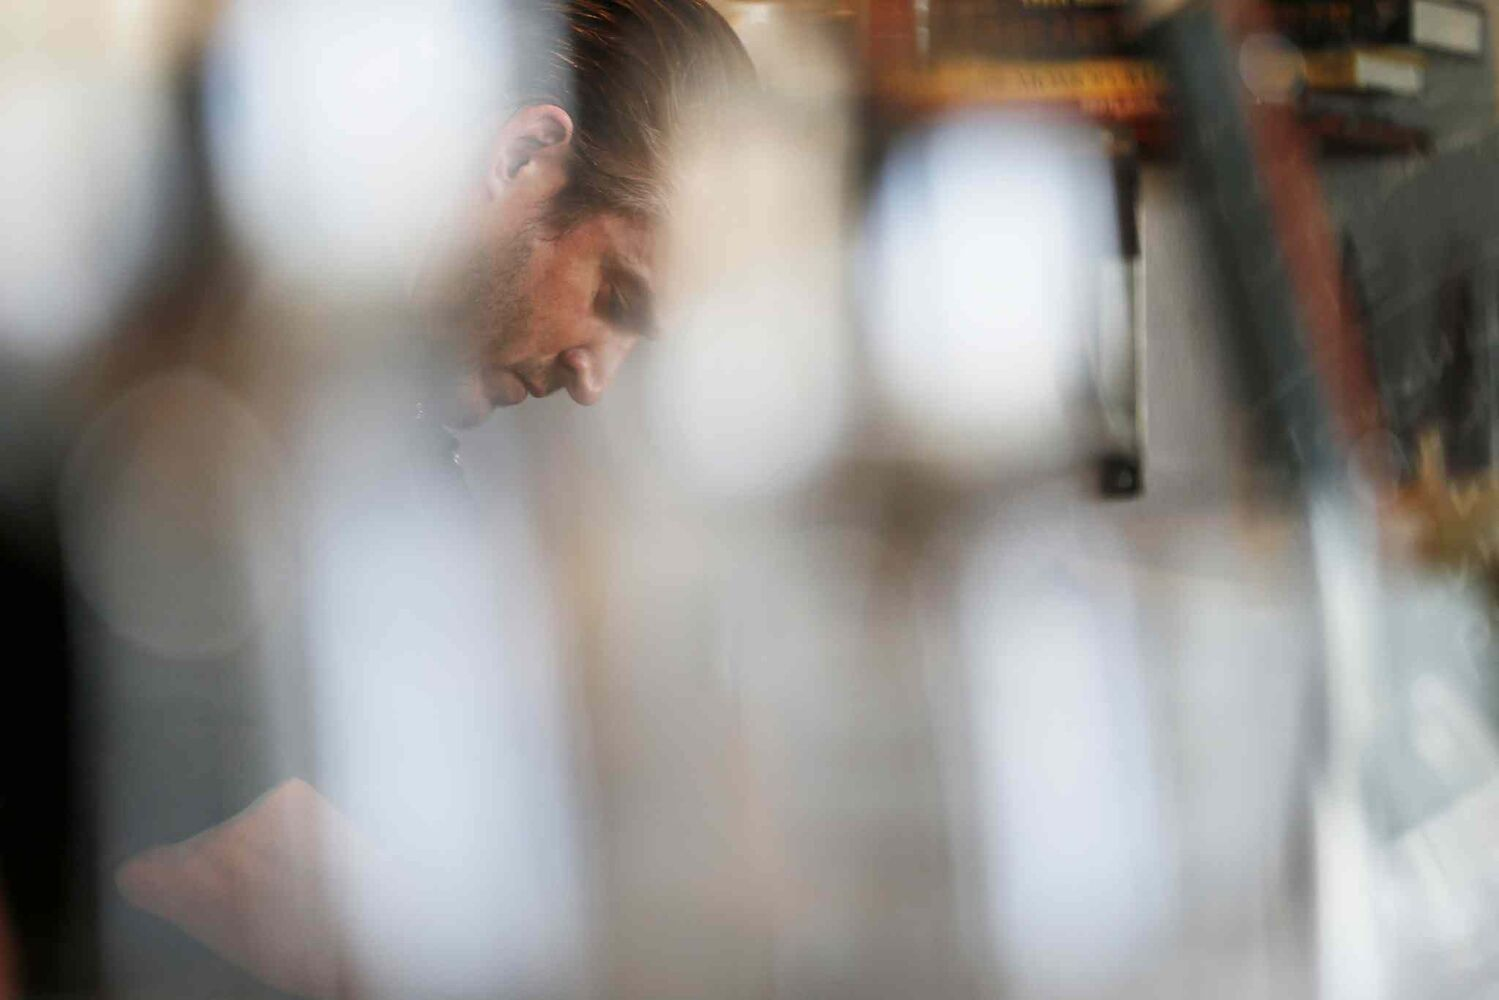 Scott Bagshaw, owner of Enoteca, in the kitchen of his new restaurant. (JOHN WOODS / WINNIPEG FREE PRESS)